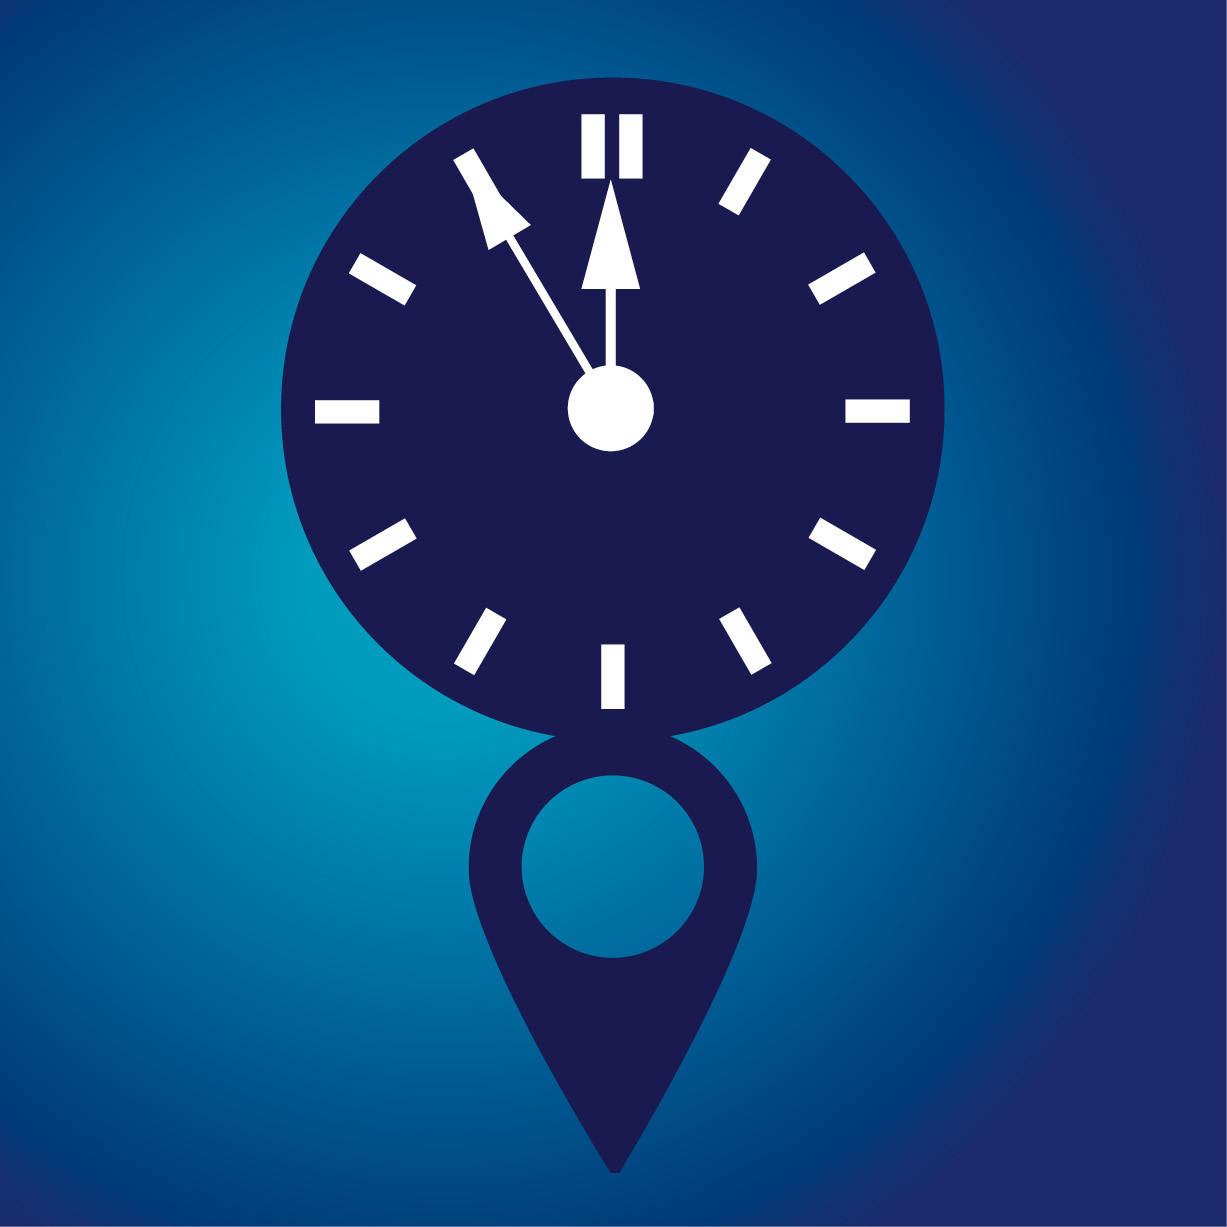 Clock image for 24/7 Library opening